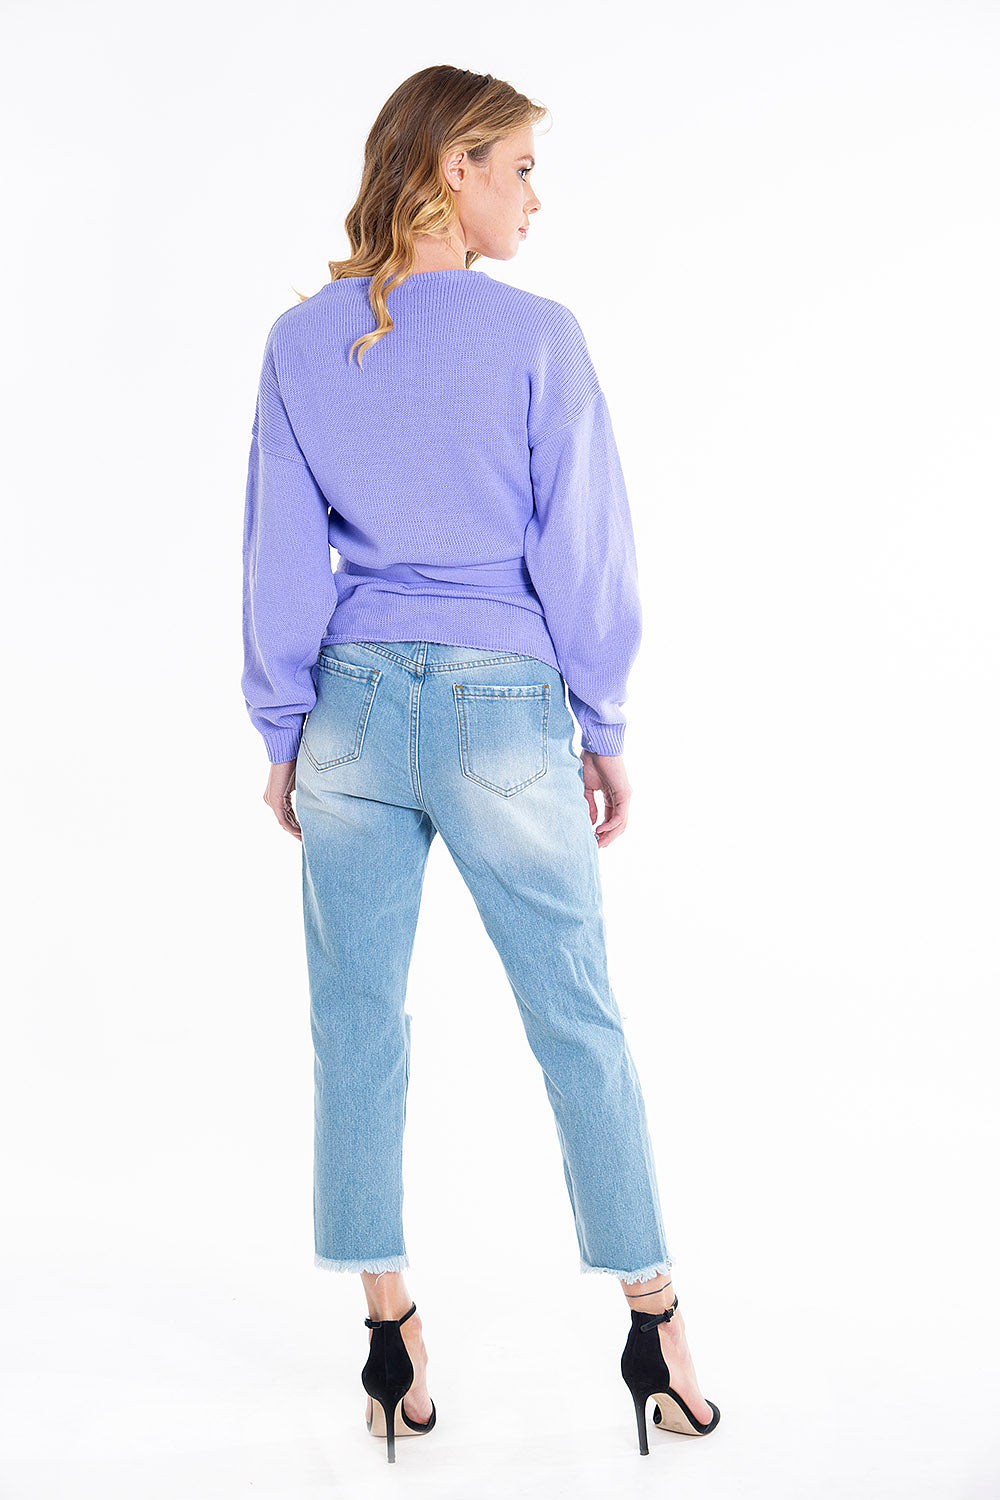 Koralline pastel pearls in ripped ankle length jeans